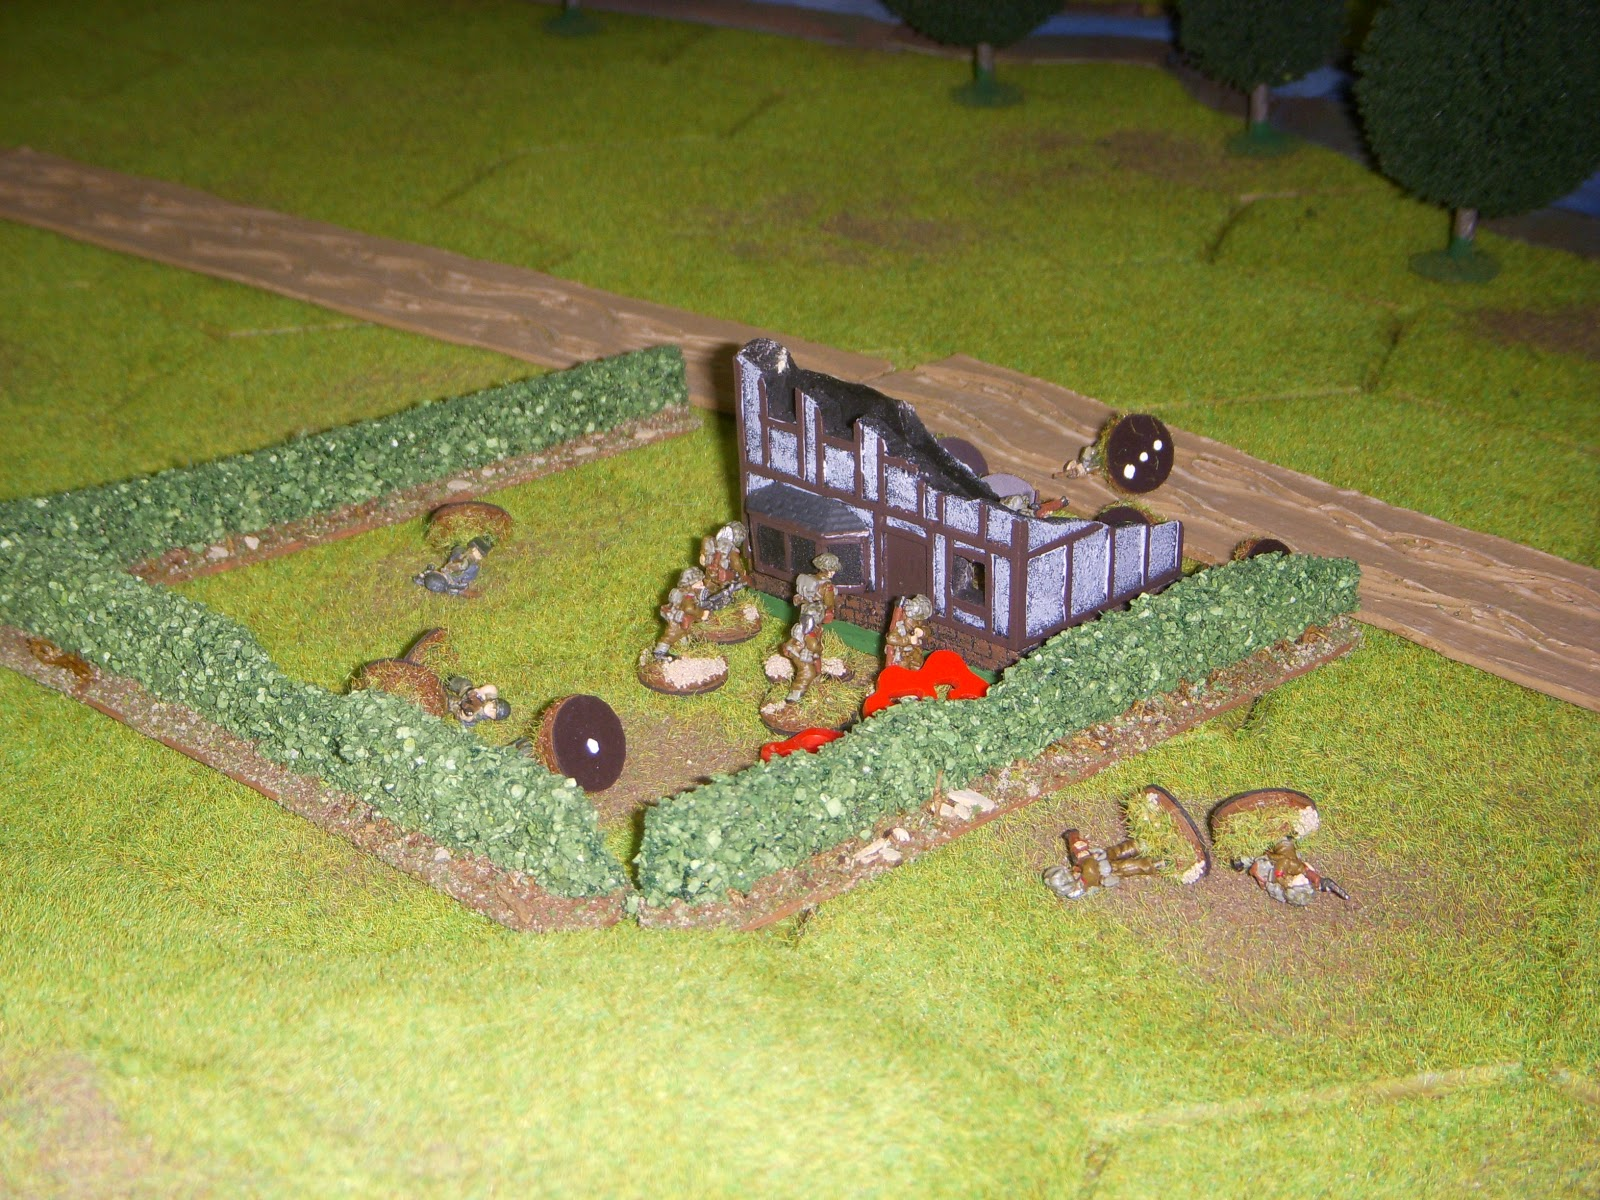 Then they captured the objective by the road to force the Germans to retreat.